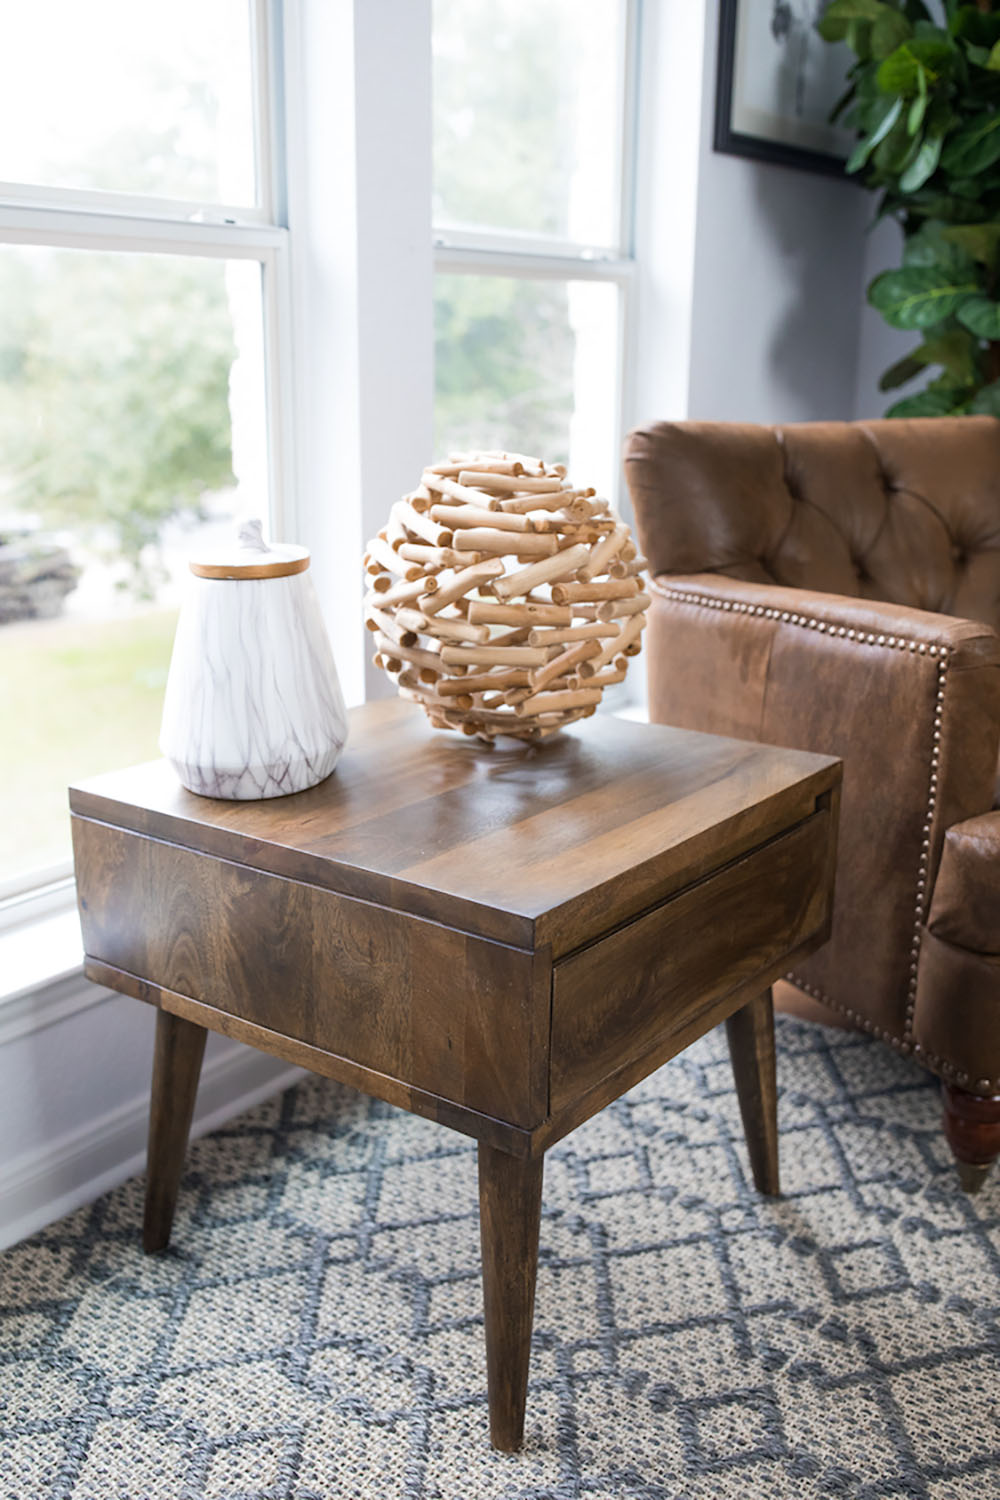 A side table with decor on top